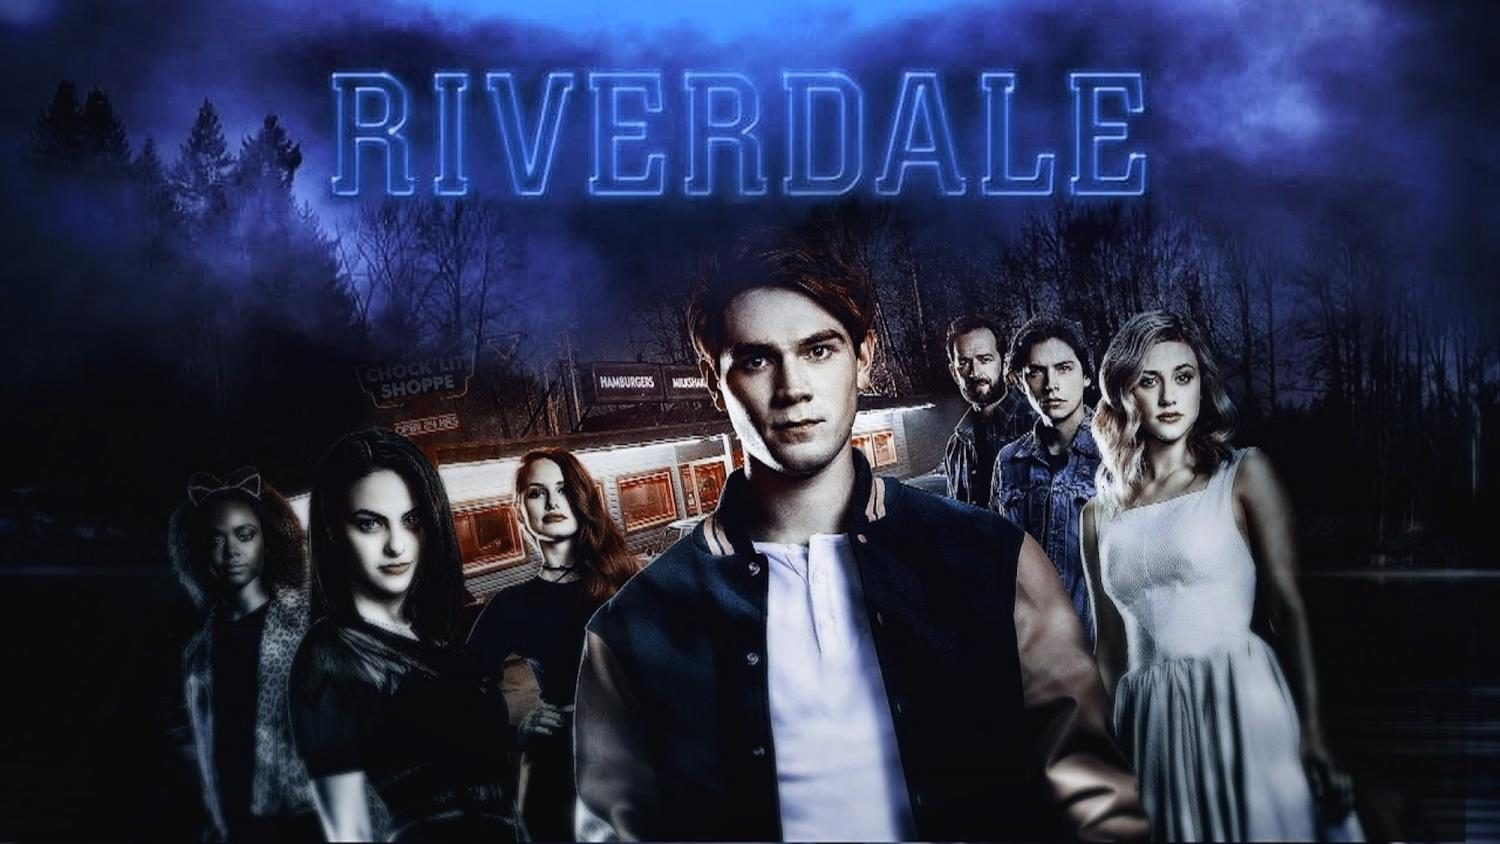 Archie Adaptation Riverdale Hooks Viewers